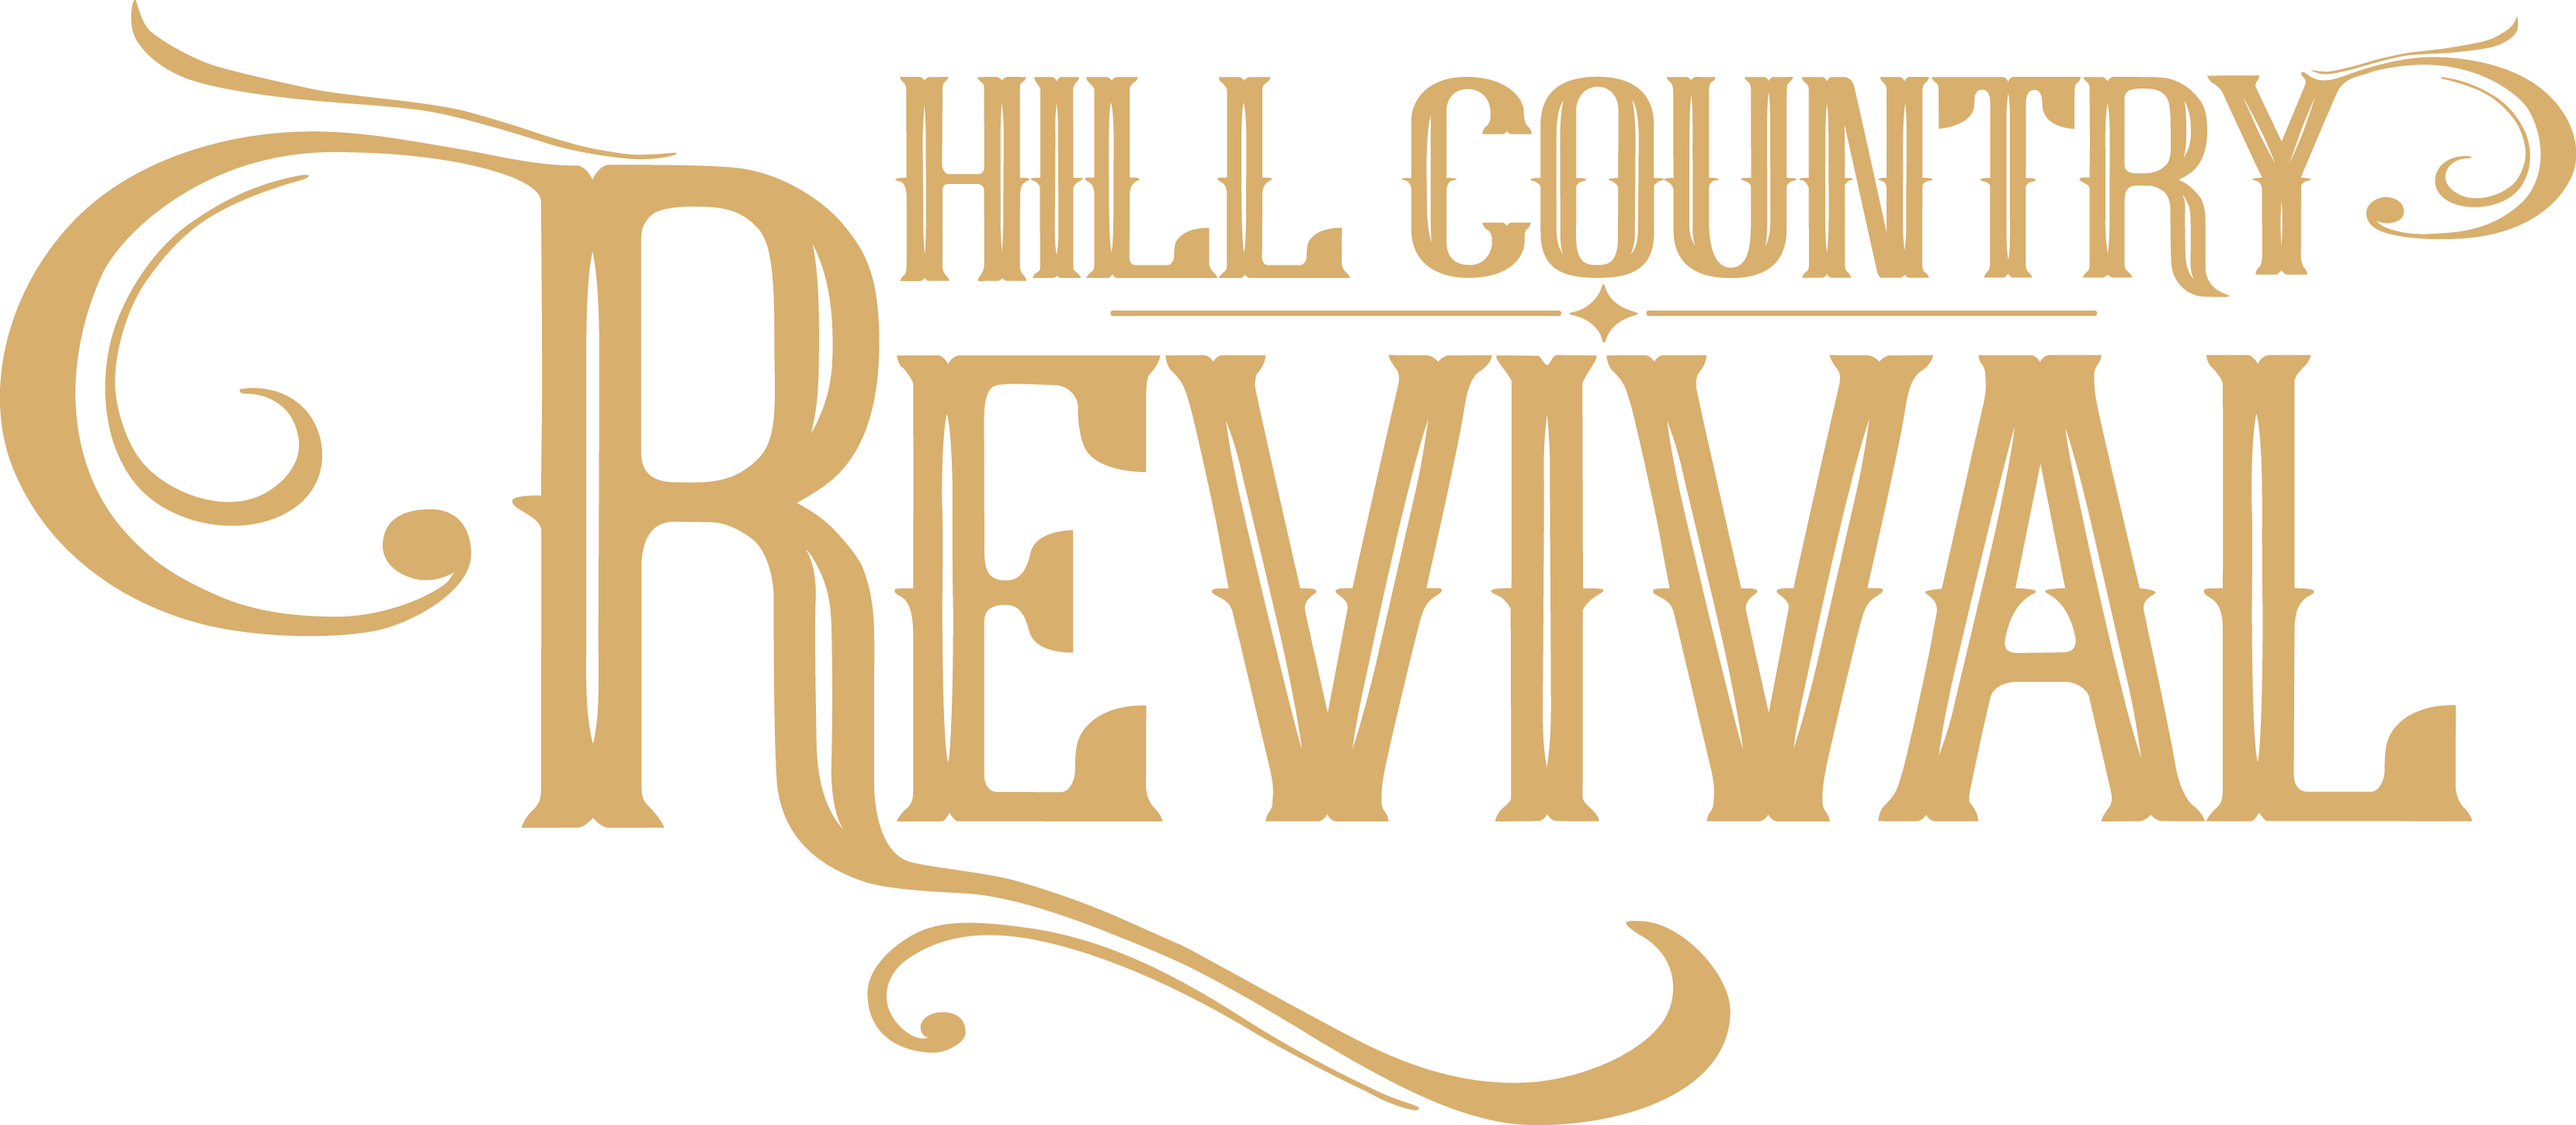 Hill Country Revival Band